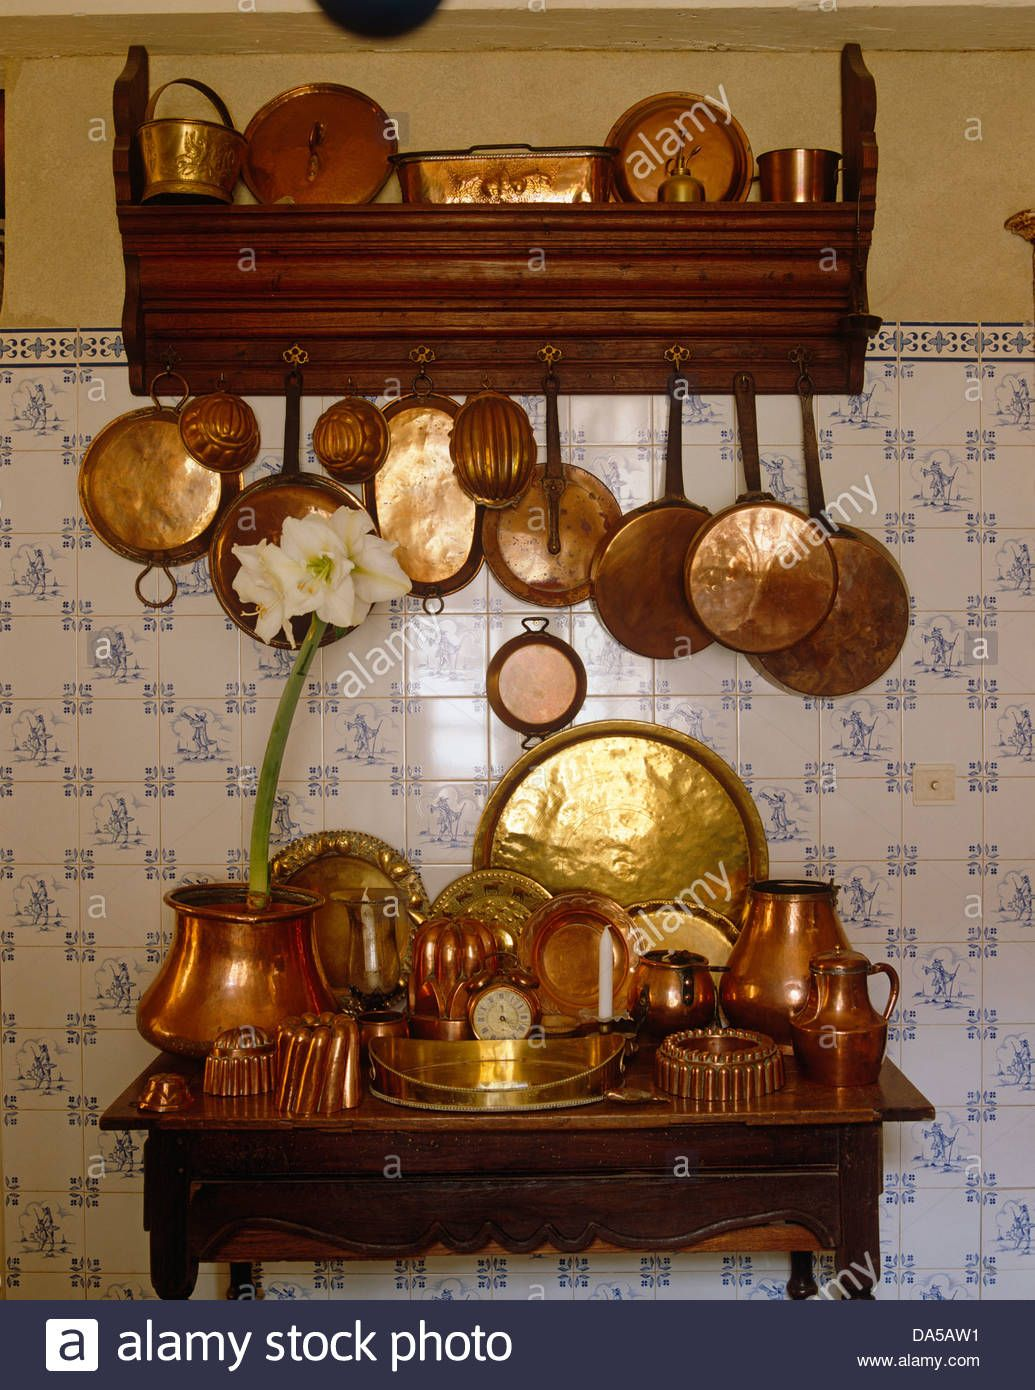 Close Up Of Collection Of Antique Copper Pots And Pans Hanging From Stock Photo Royalty Free Image 57895965 Alamy Pfannenhalter Halte Durch Kupfer